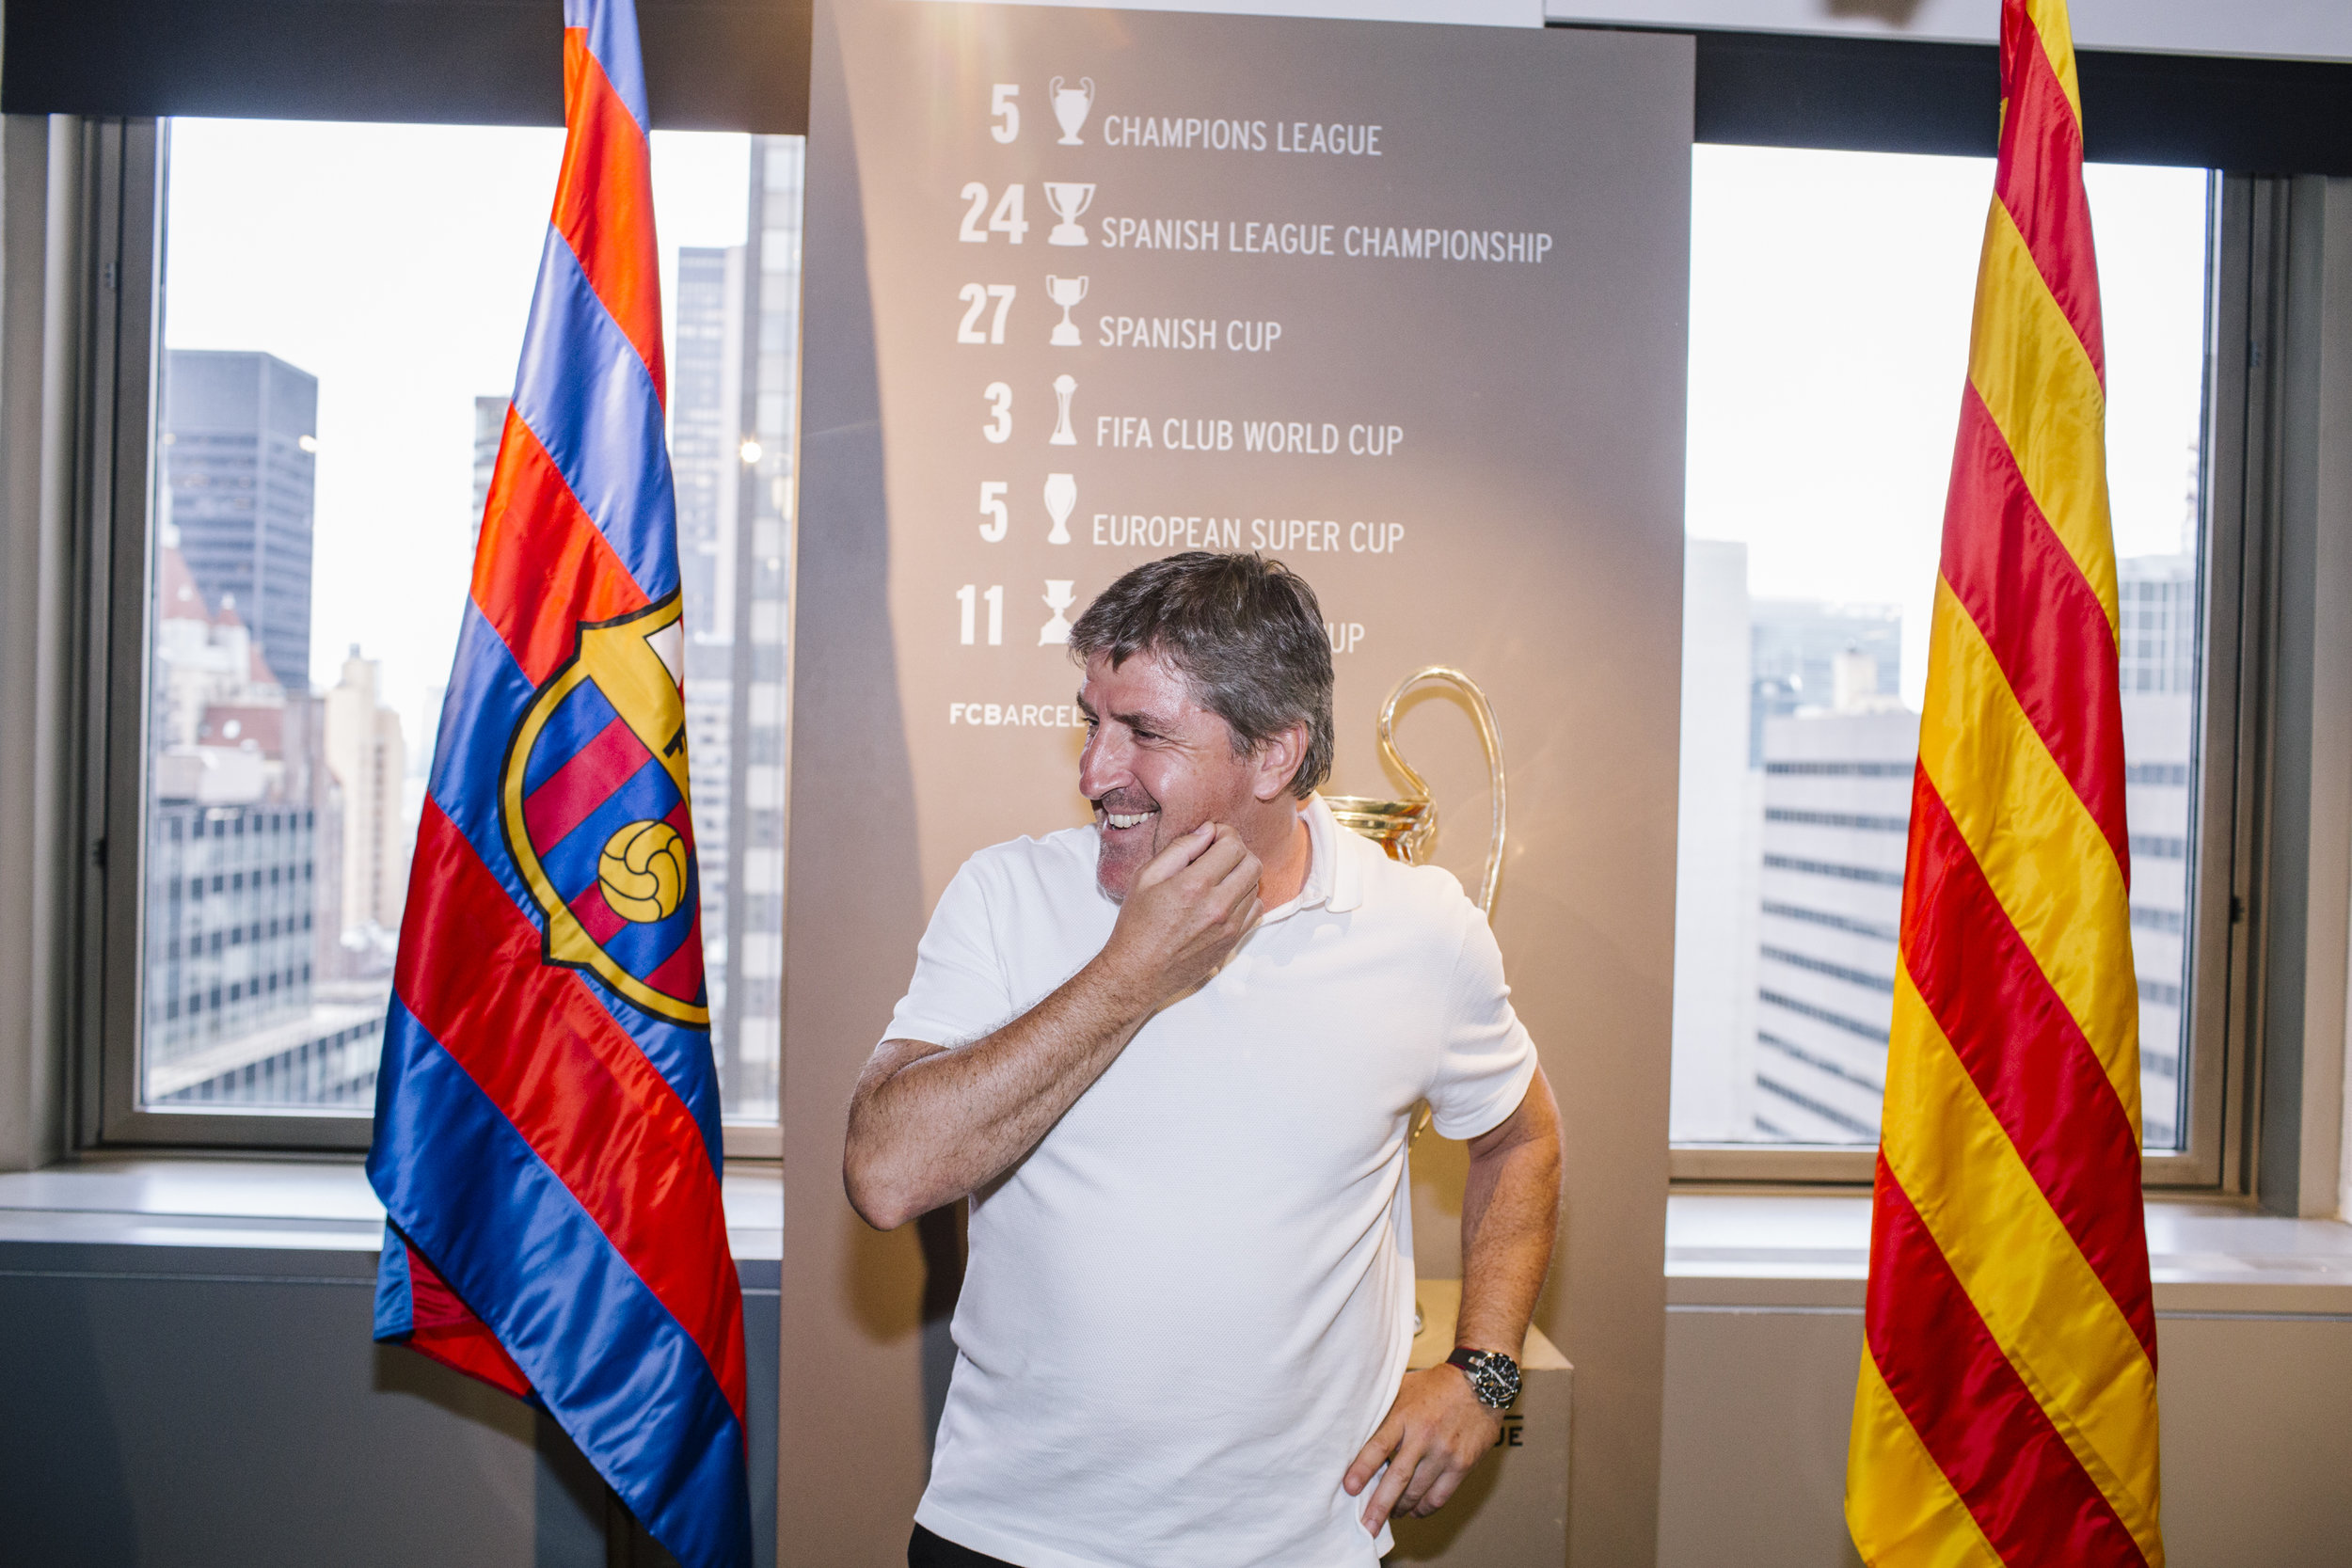 Director of Youth Football Jordi Roura